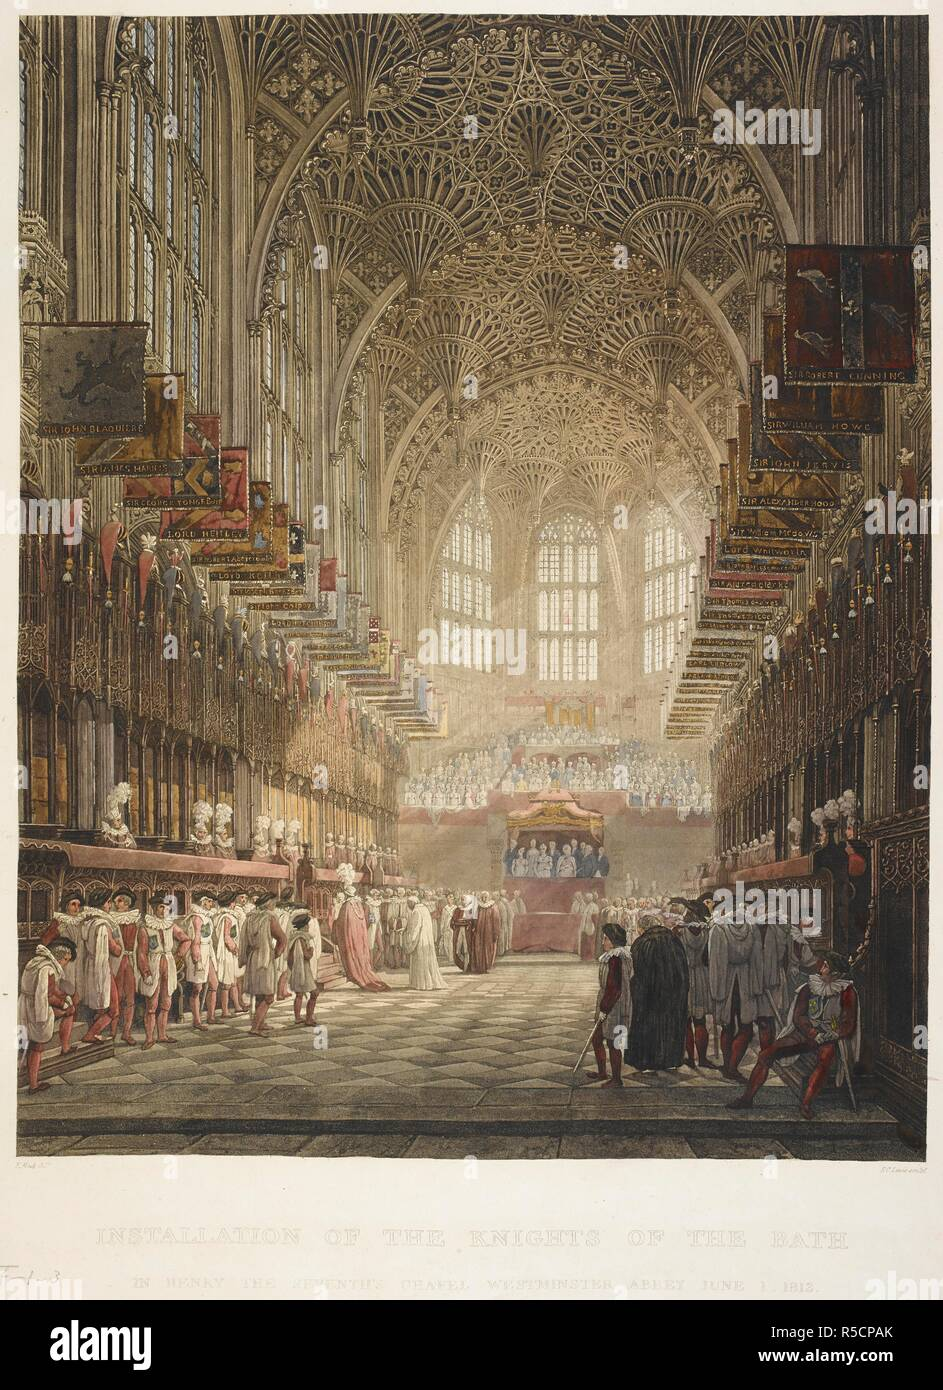 Interior view of a chapel with knights with plumed helmets standing on either side of the choir; windows and the royal box at the end of the chapel; a congregation and an organ below the window on the far wall; the scene bathed in sunlight from the right. INSTALLATION OF THE KNIGHTS OF THE BATH IN HENRY THE SEVENTH'S CHAPEL WESTMINSTER ABBEY JUNE 1 1812. [London] : Pubd. by R. Ackermann 1813 Repository of Arts 202 Strand, 1813. Aquatint and etching with hand-colouring. Source: Maps K.Top.24.4.ff.1-3. Language: English. Author: LEWIS, FREDERICK CHRISTIAN. Stock Photo